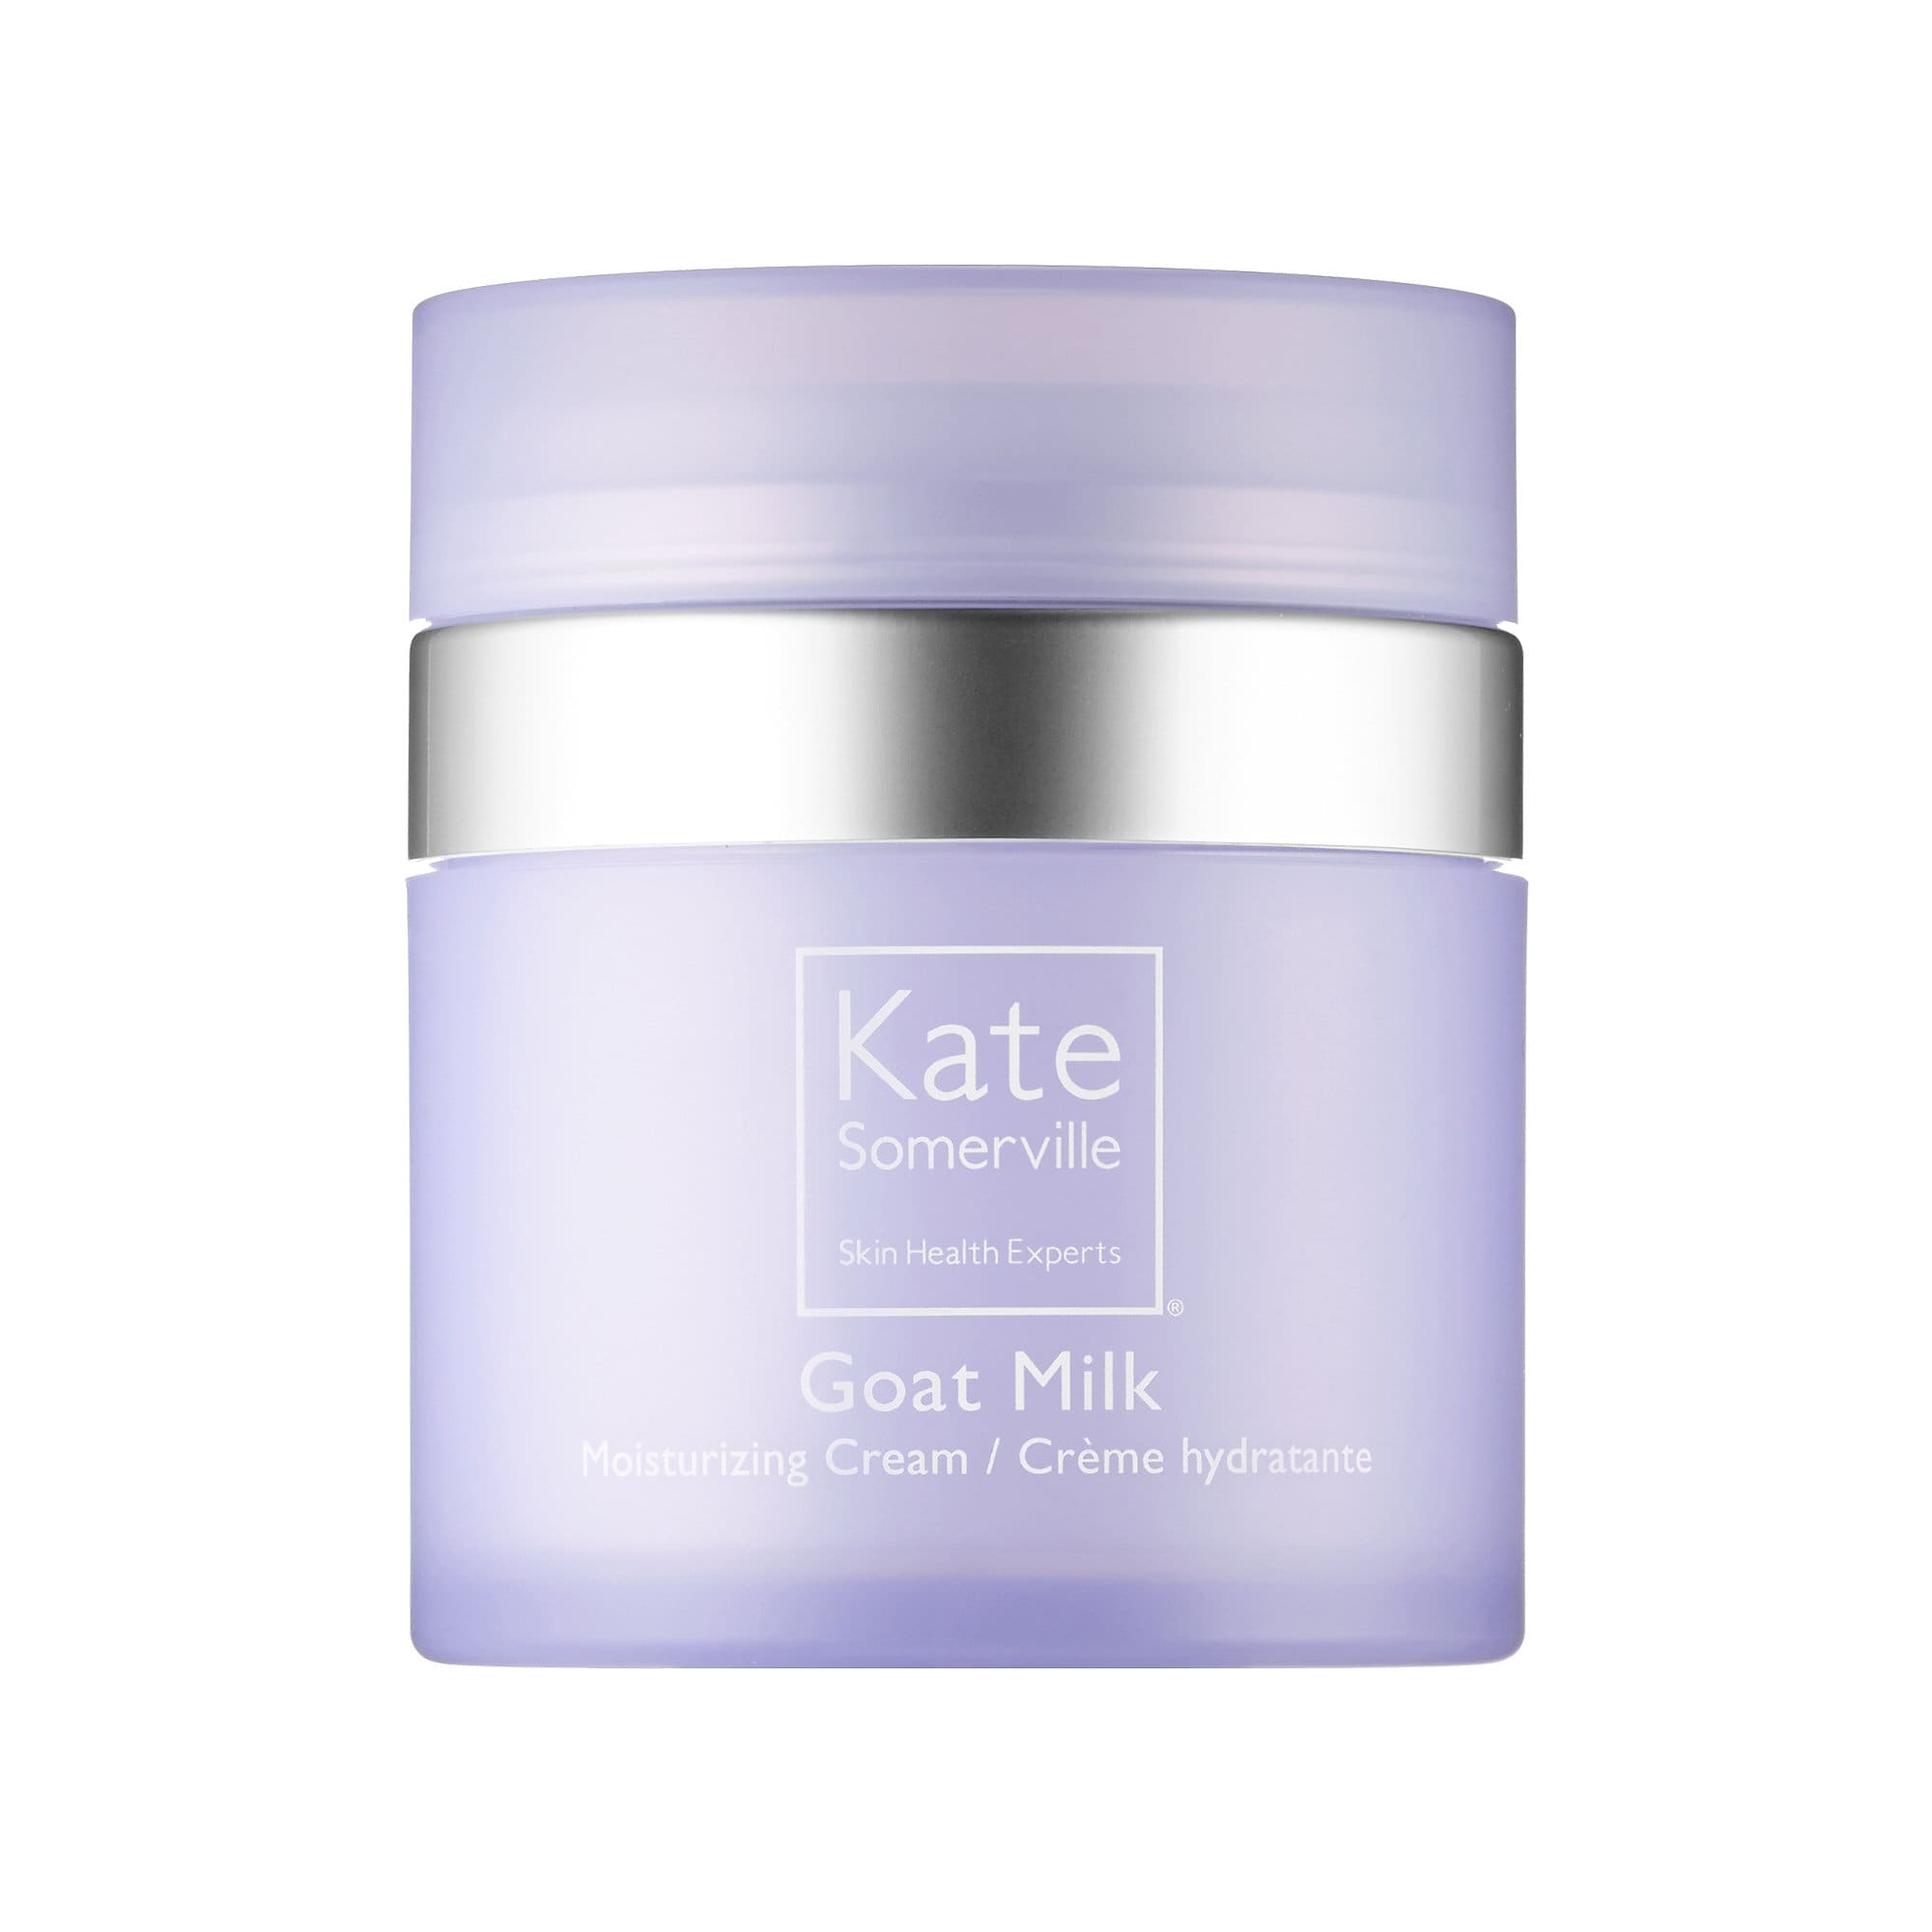 Kate Somerville Skincare - Goat Milk Moisturizing Cream